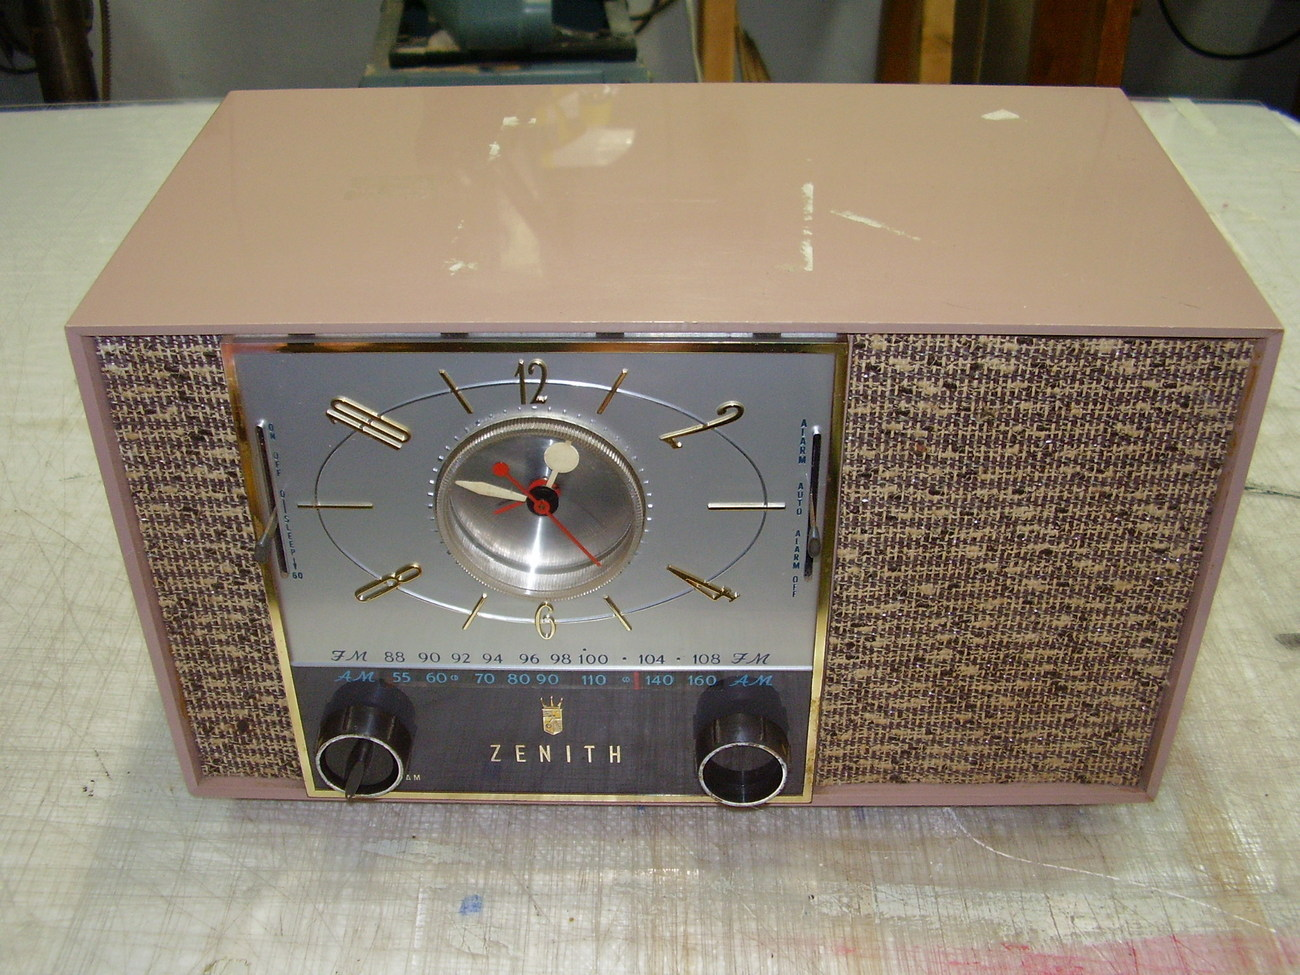 zenith model f728c tube radio vintage parts or repair. Black Bedroom Furniture Sets. Home Design Ideas